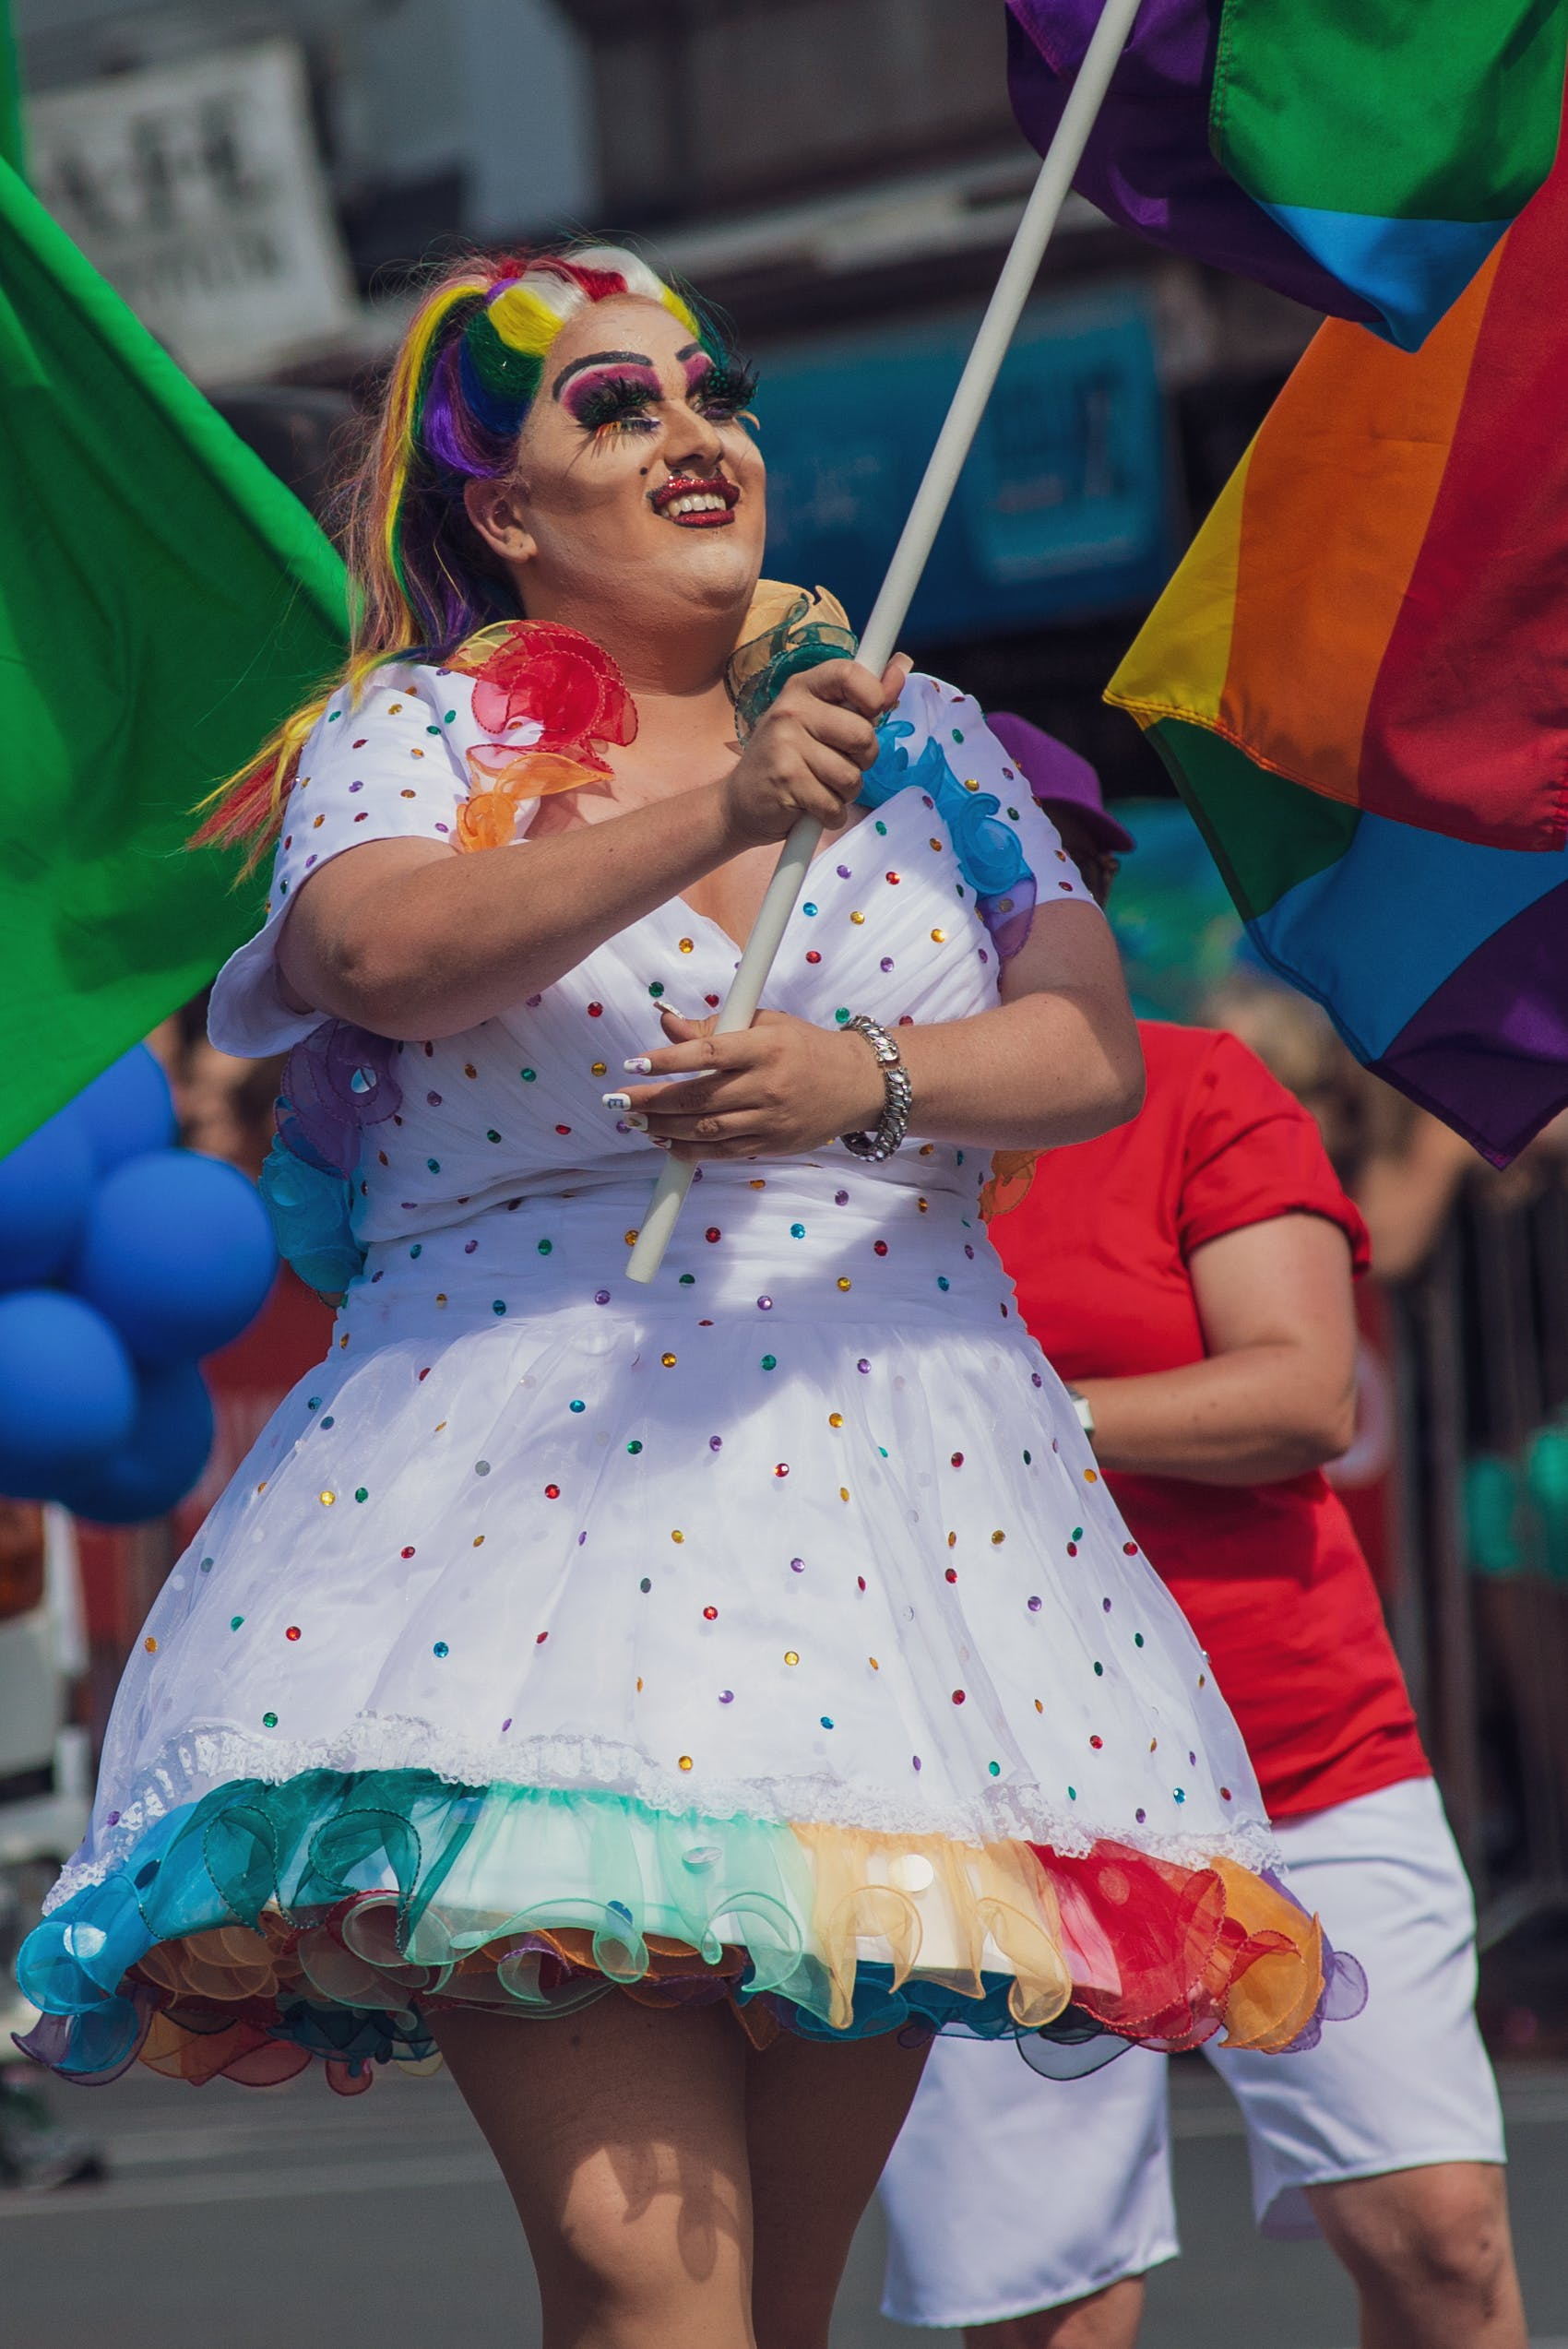 Woman in Multicolored Polka-dot Dress Holding Flag